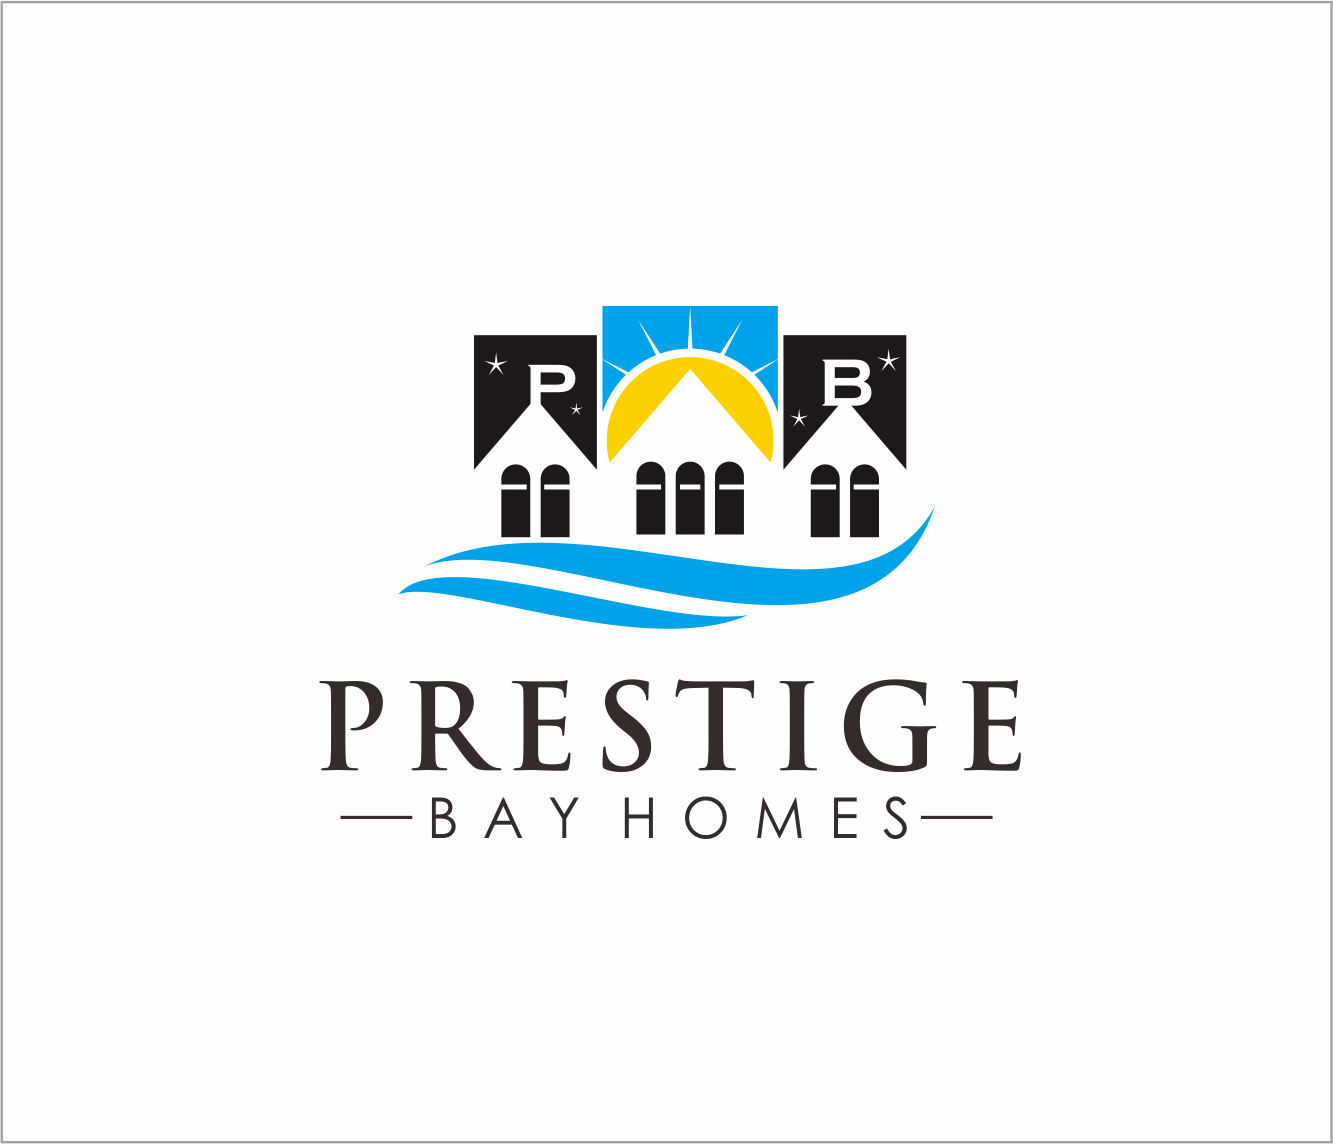 Logo Design by Armada Jamaluddin - Entry No. 112 in the Logo Design Contest Imaginative Logo Design for Prestige Bay Homes.